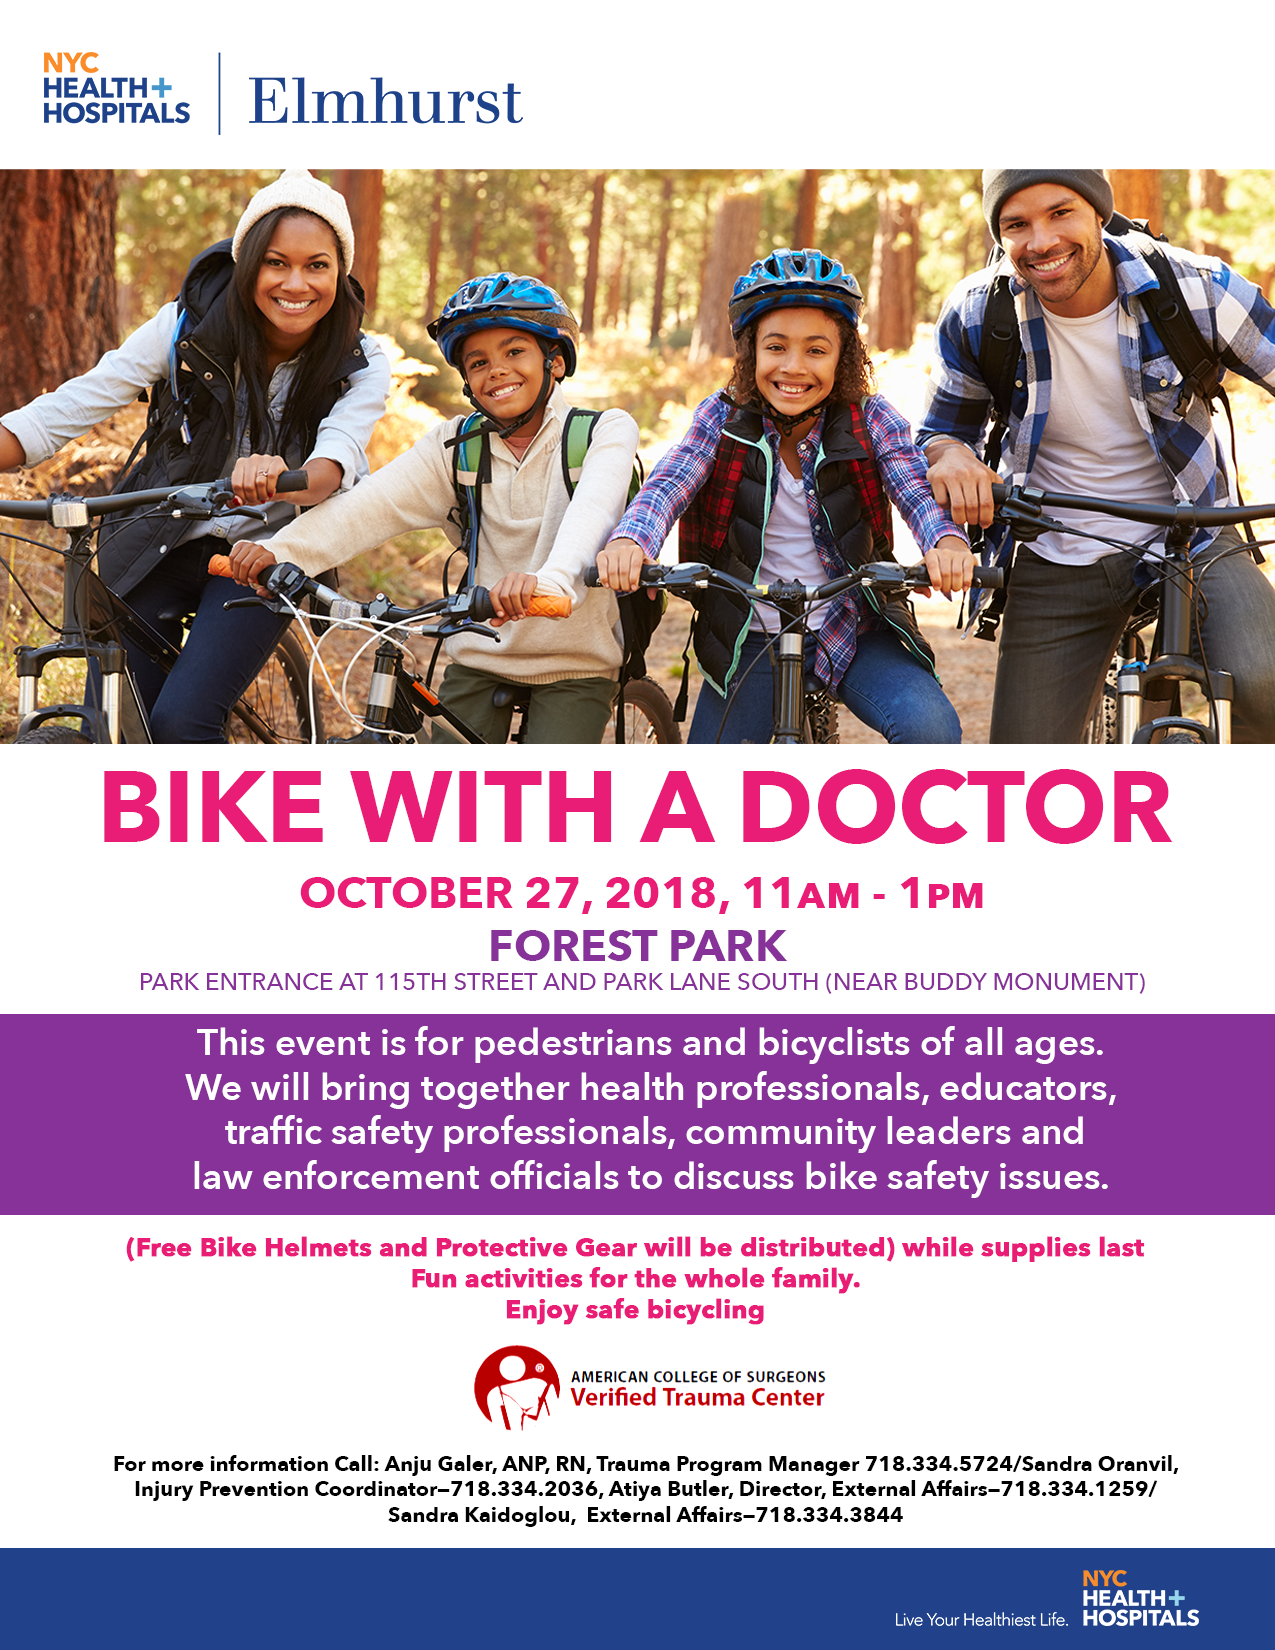 Bike with doctor event